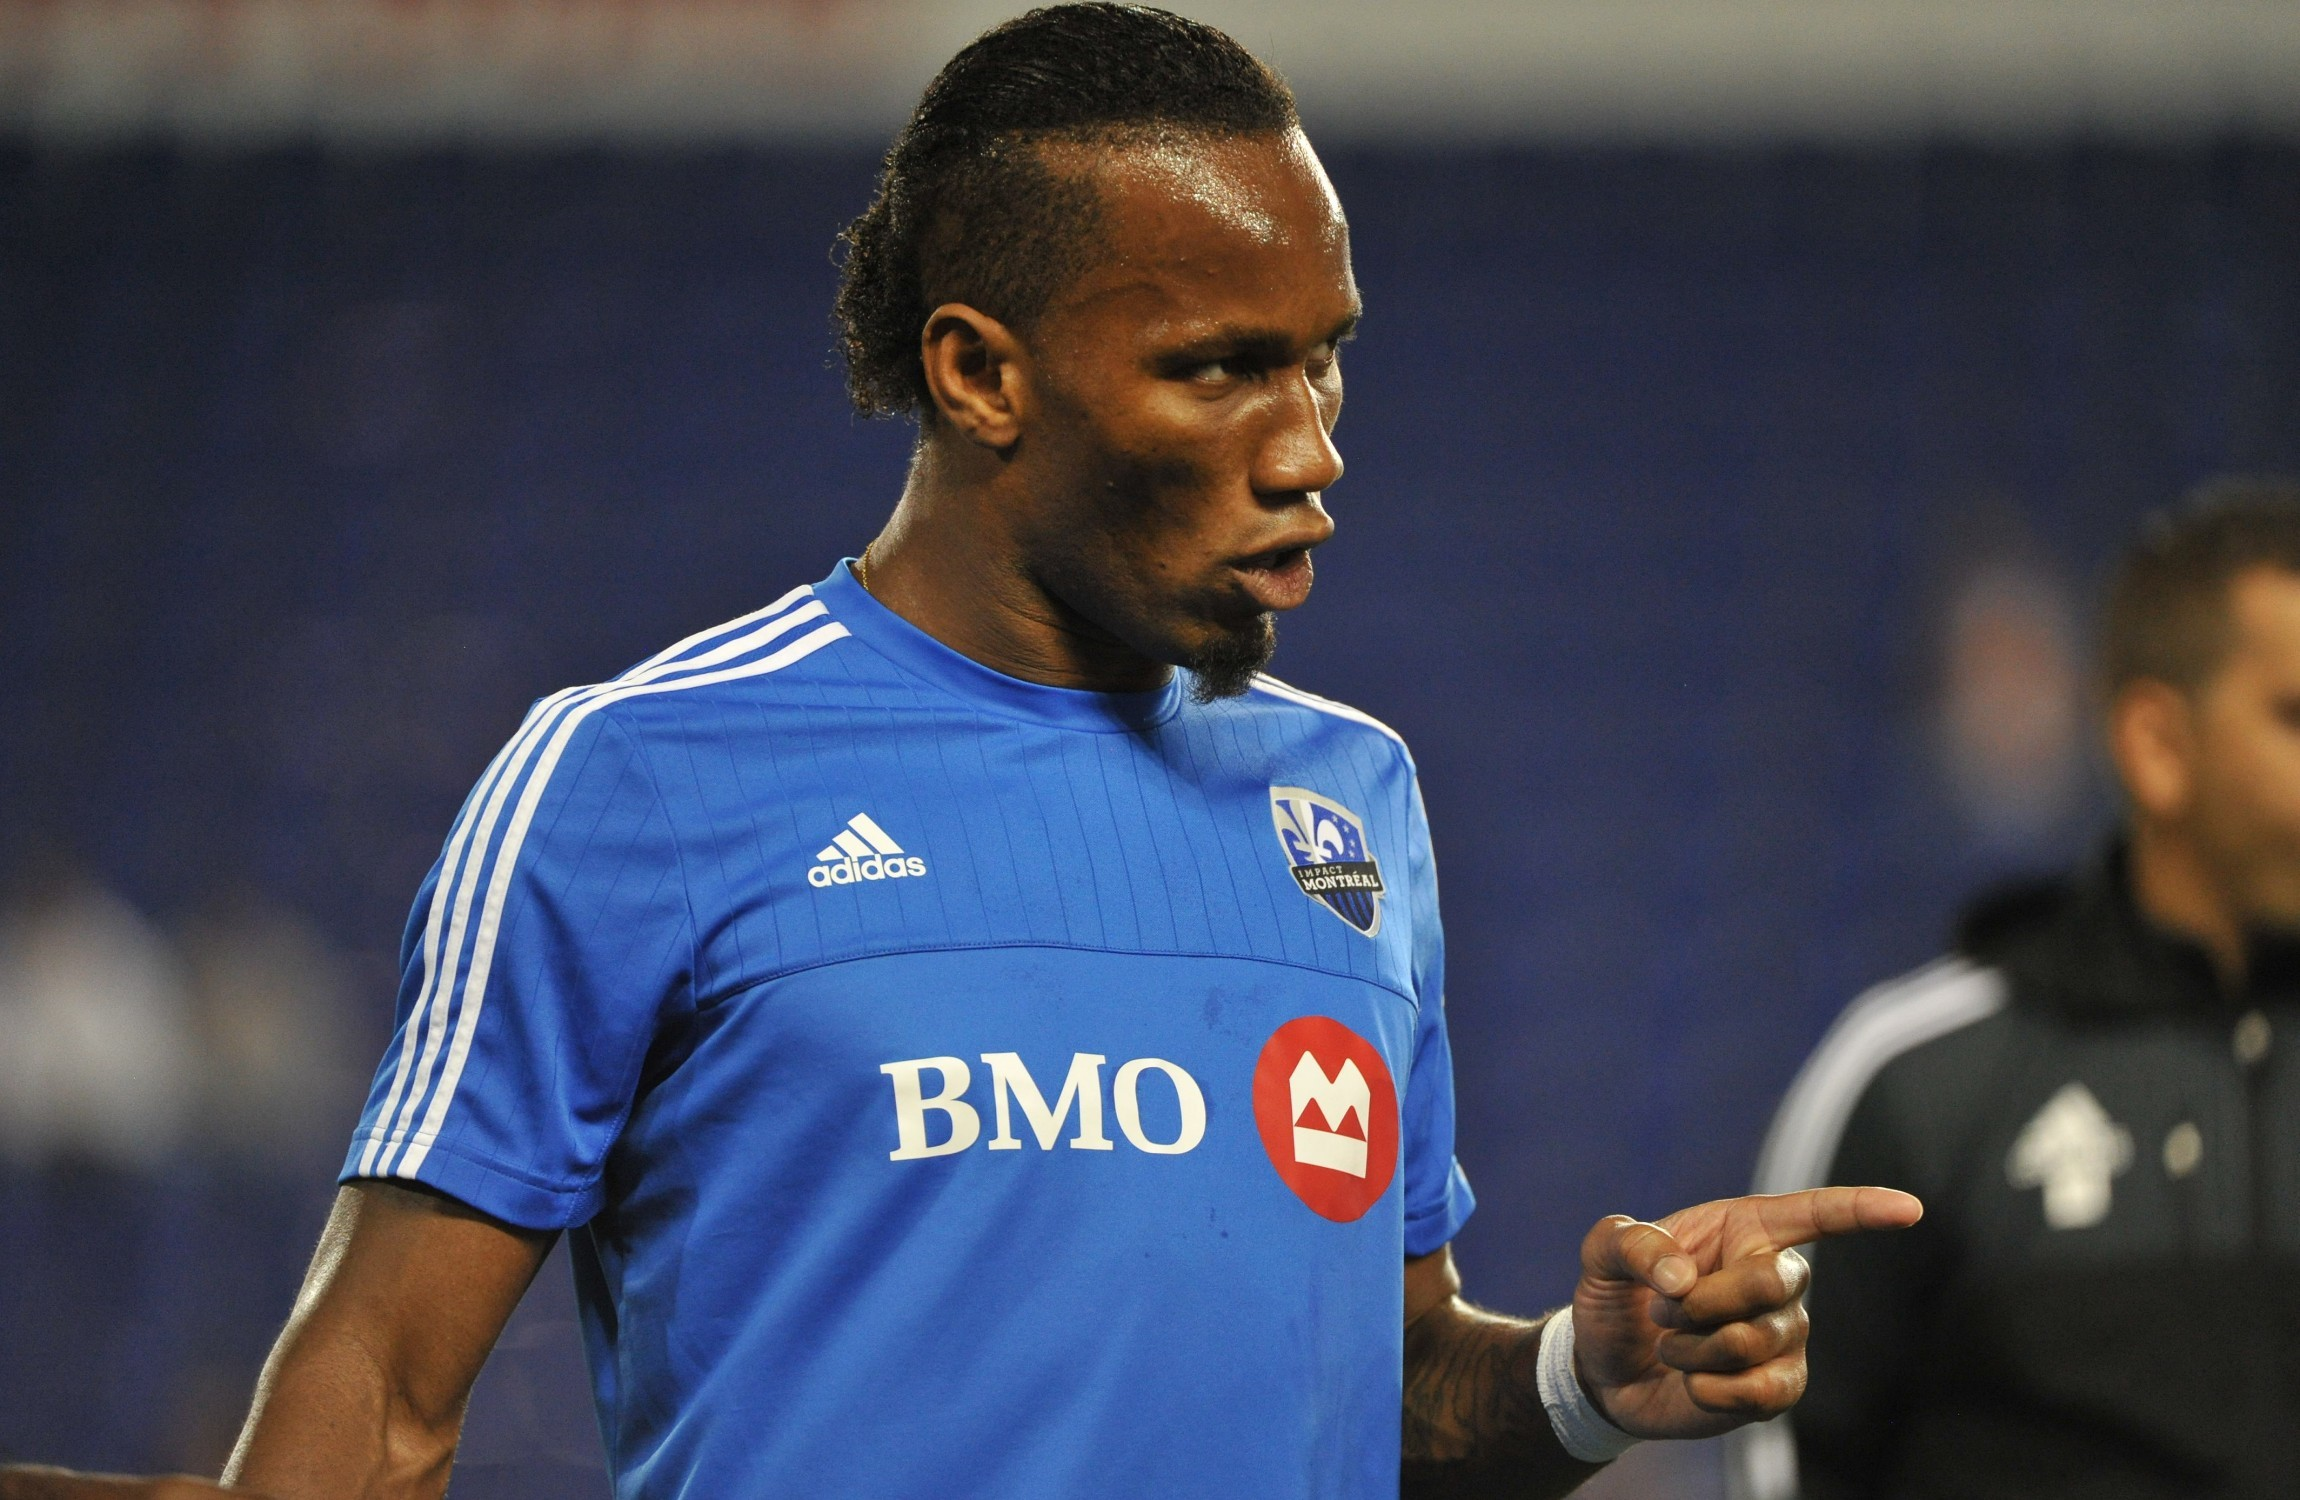 Di r Drogba has signed a deal to play for and co own a team in